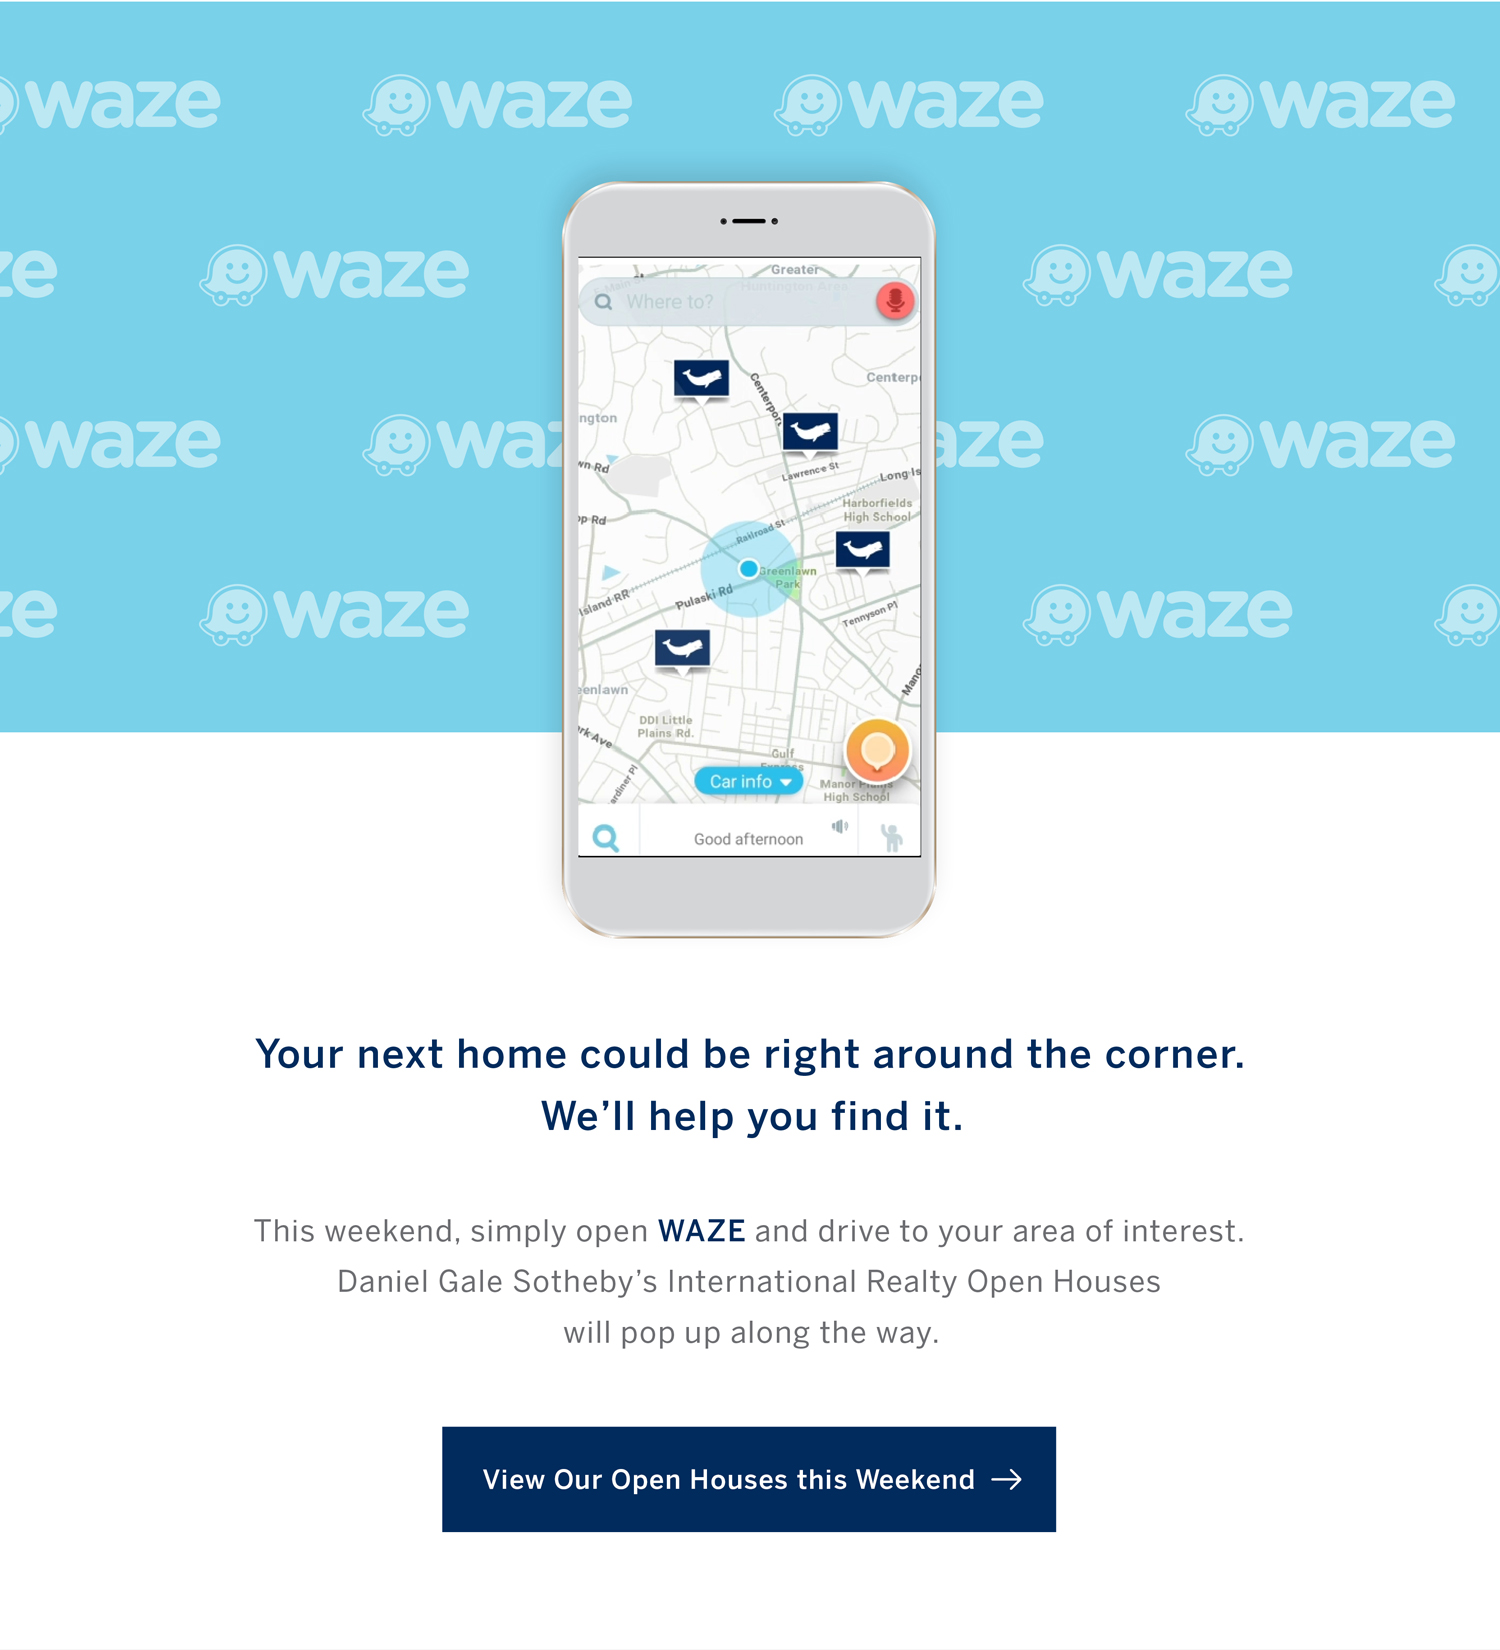 Find Our Open Houses This Weekend with Waze